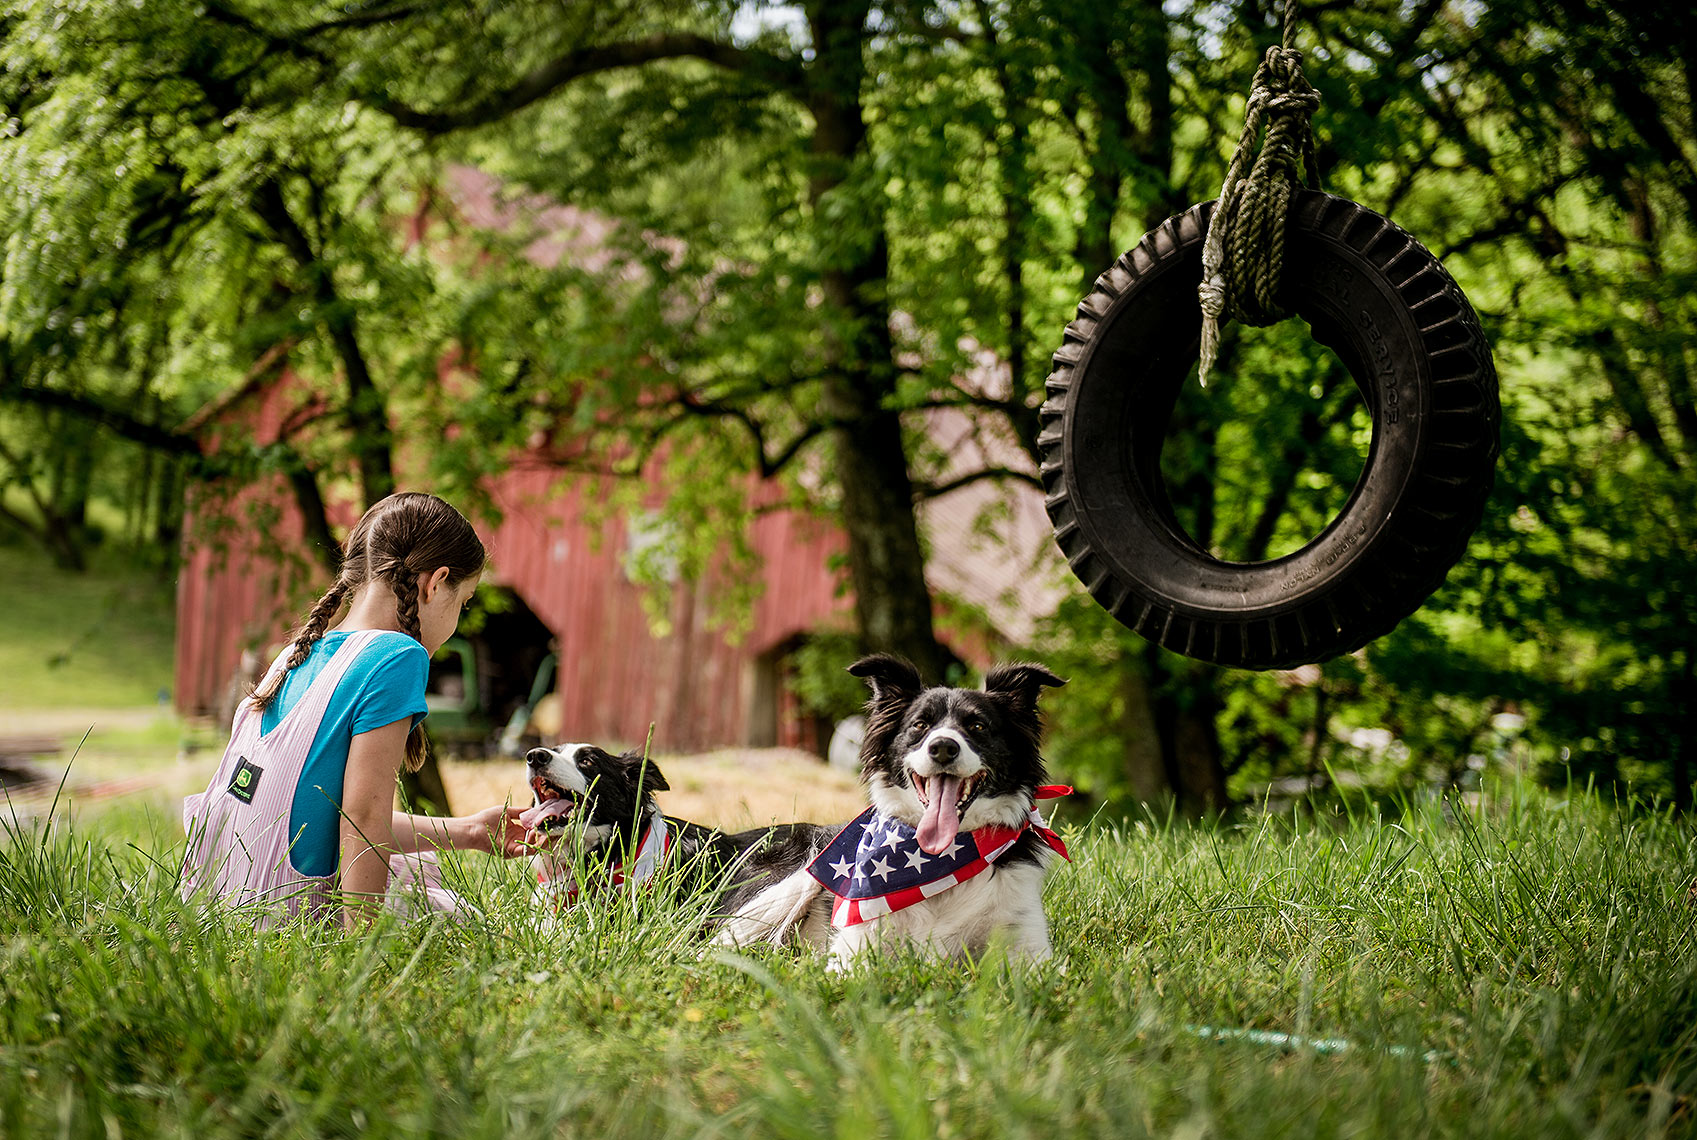 Girl with Dogs and Tire Swing